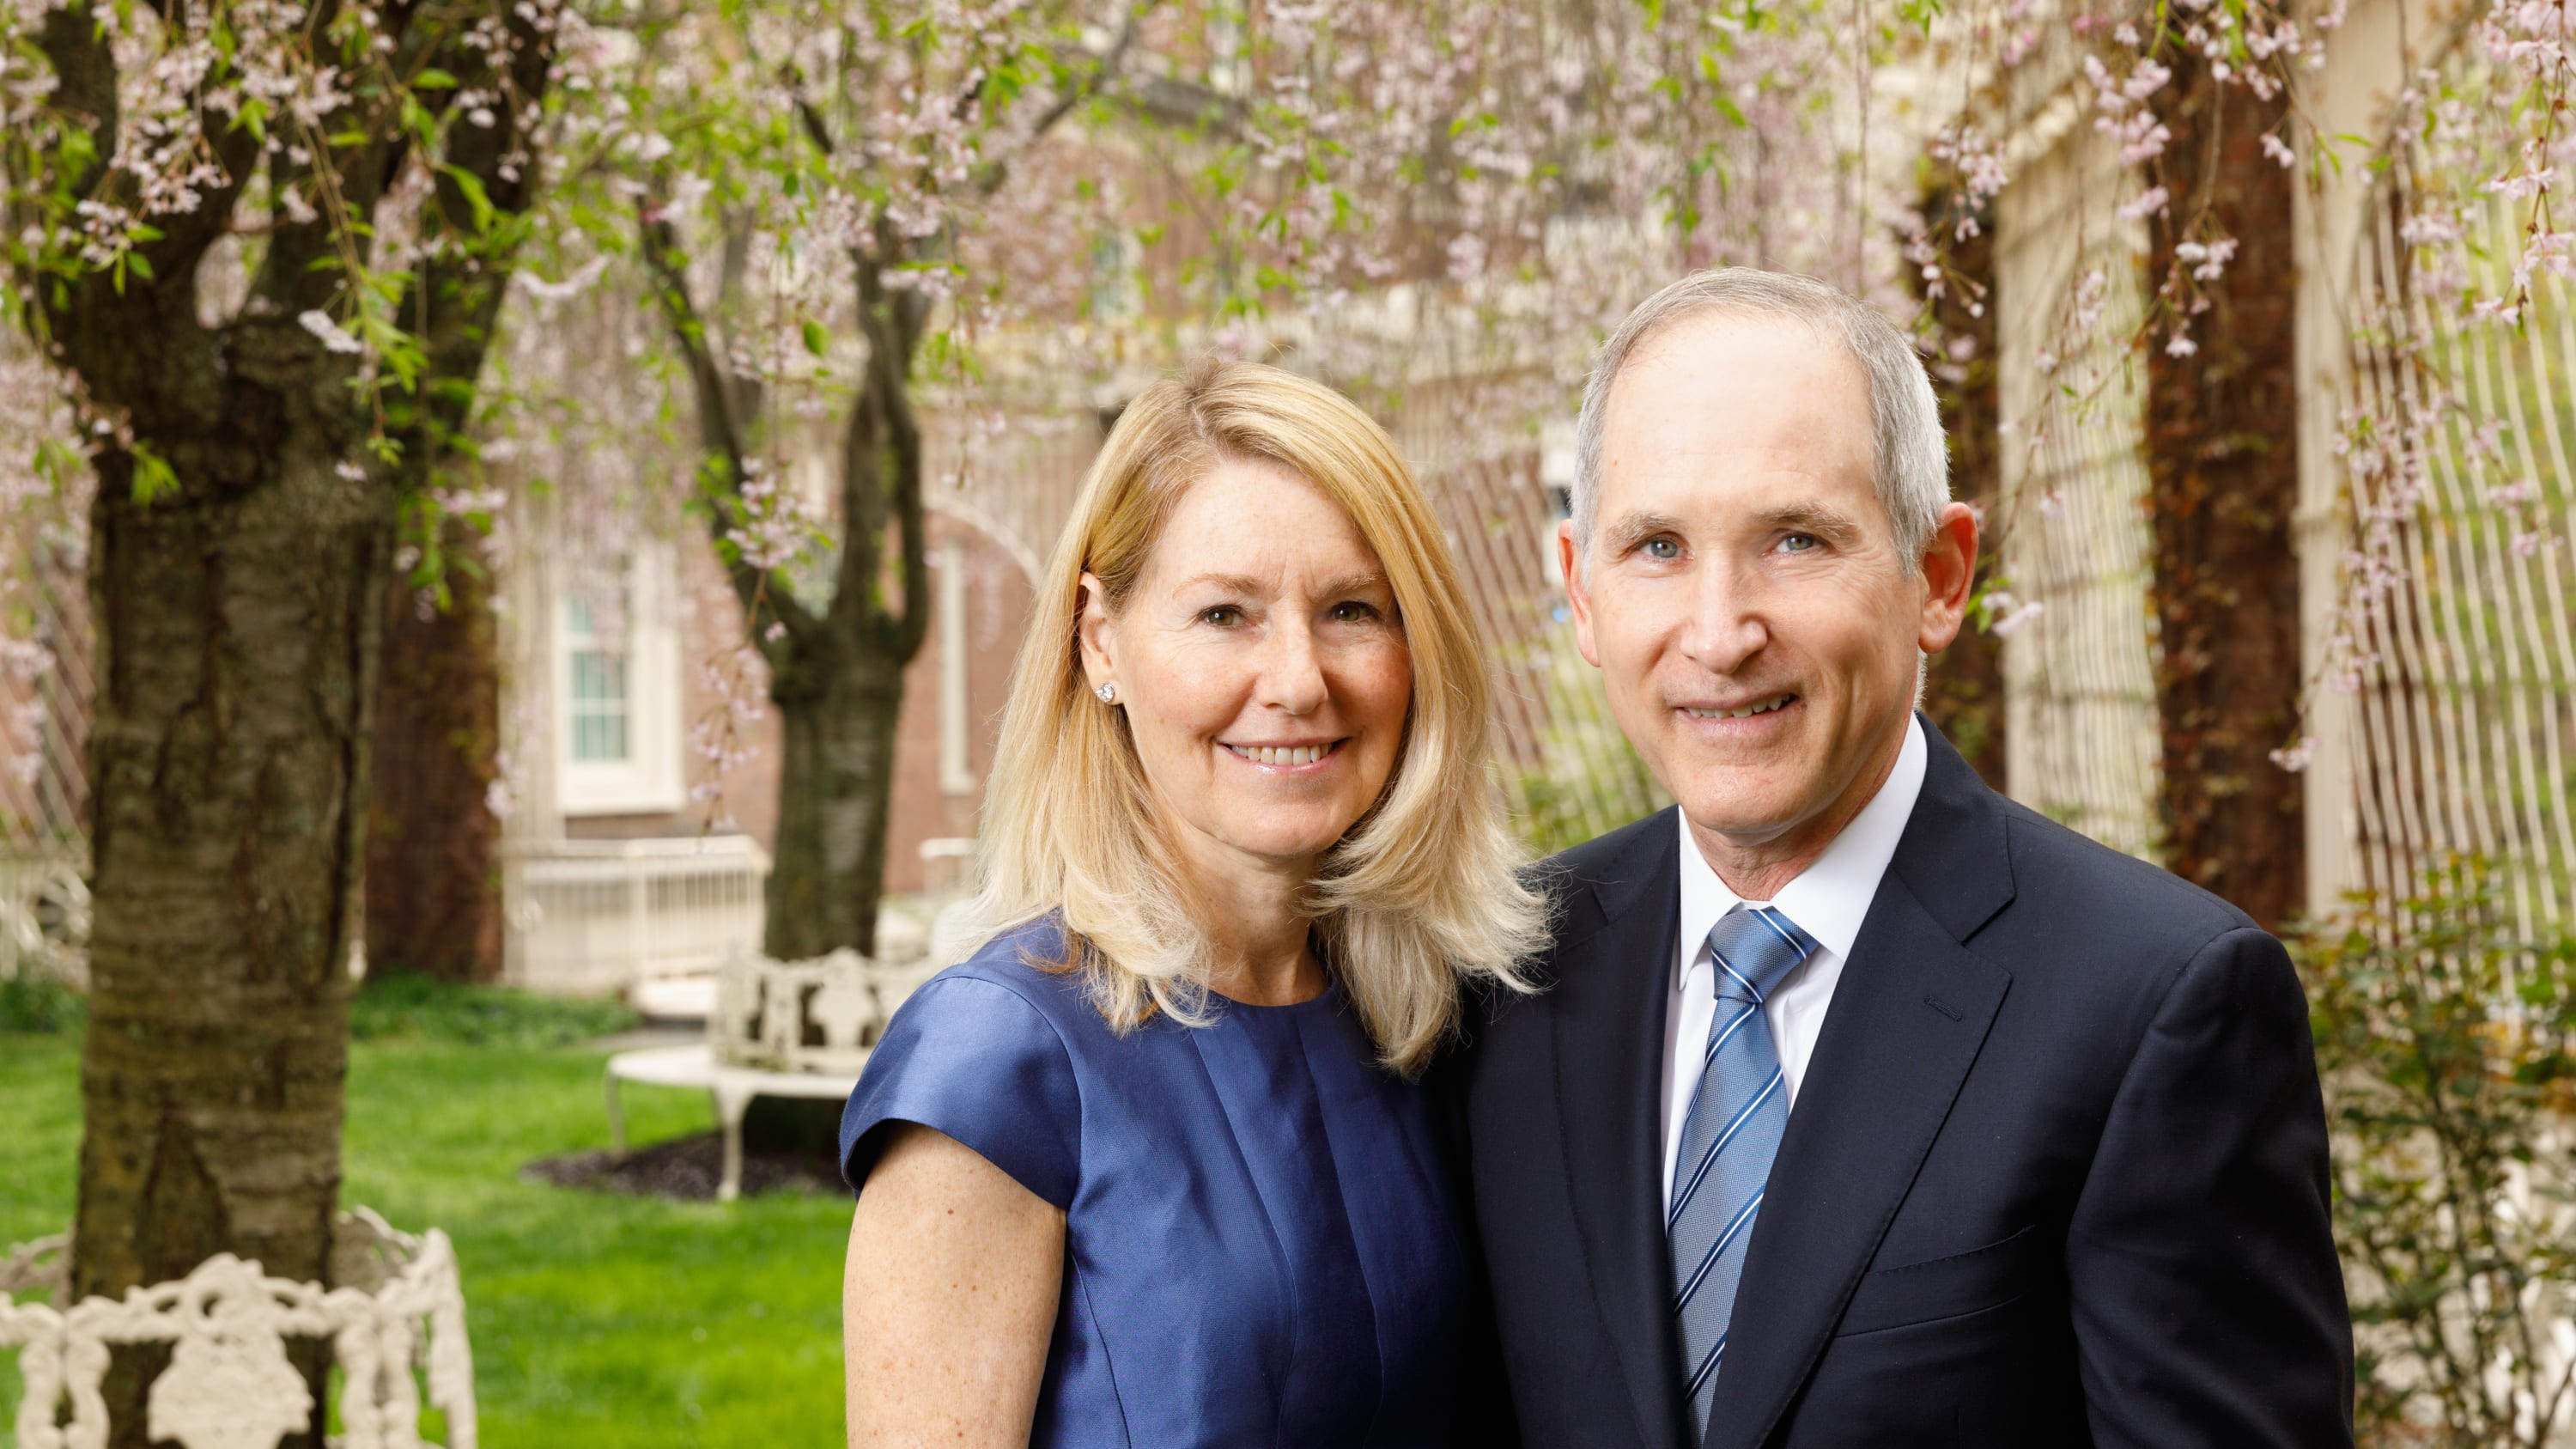 Yale Cancer Center Director Charles Fuchs, MD, (right) and his wife, Joanna Fuchs, MD, have personal reasons for taking on colon cancer.